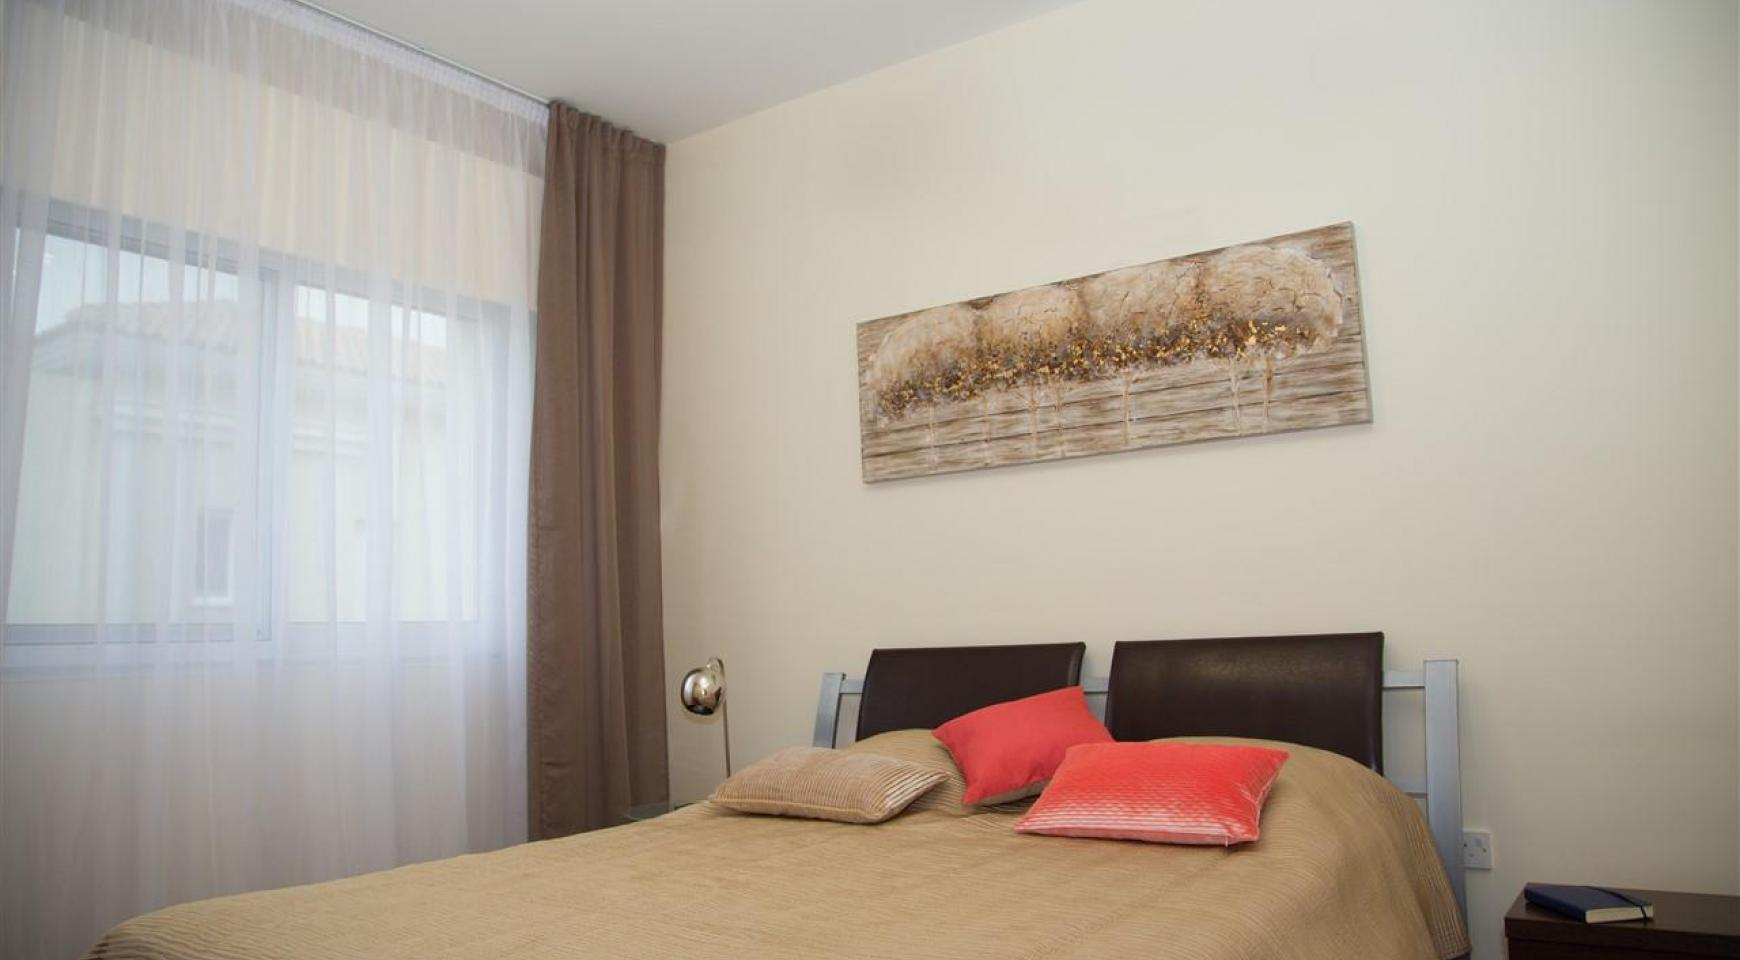 2 Bedroom Apartment Mesogios Iris 304 in the Complex near the Sea - 19